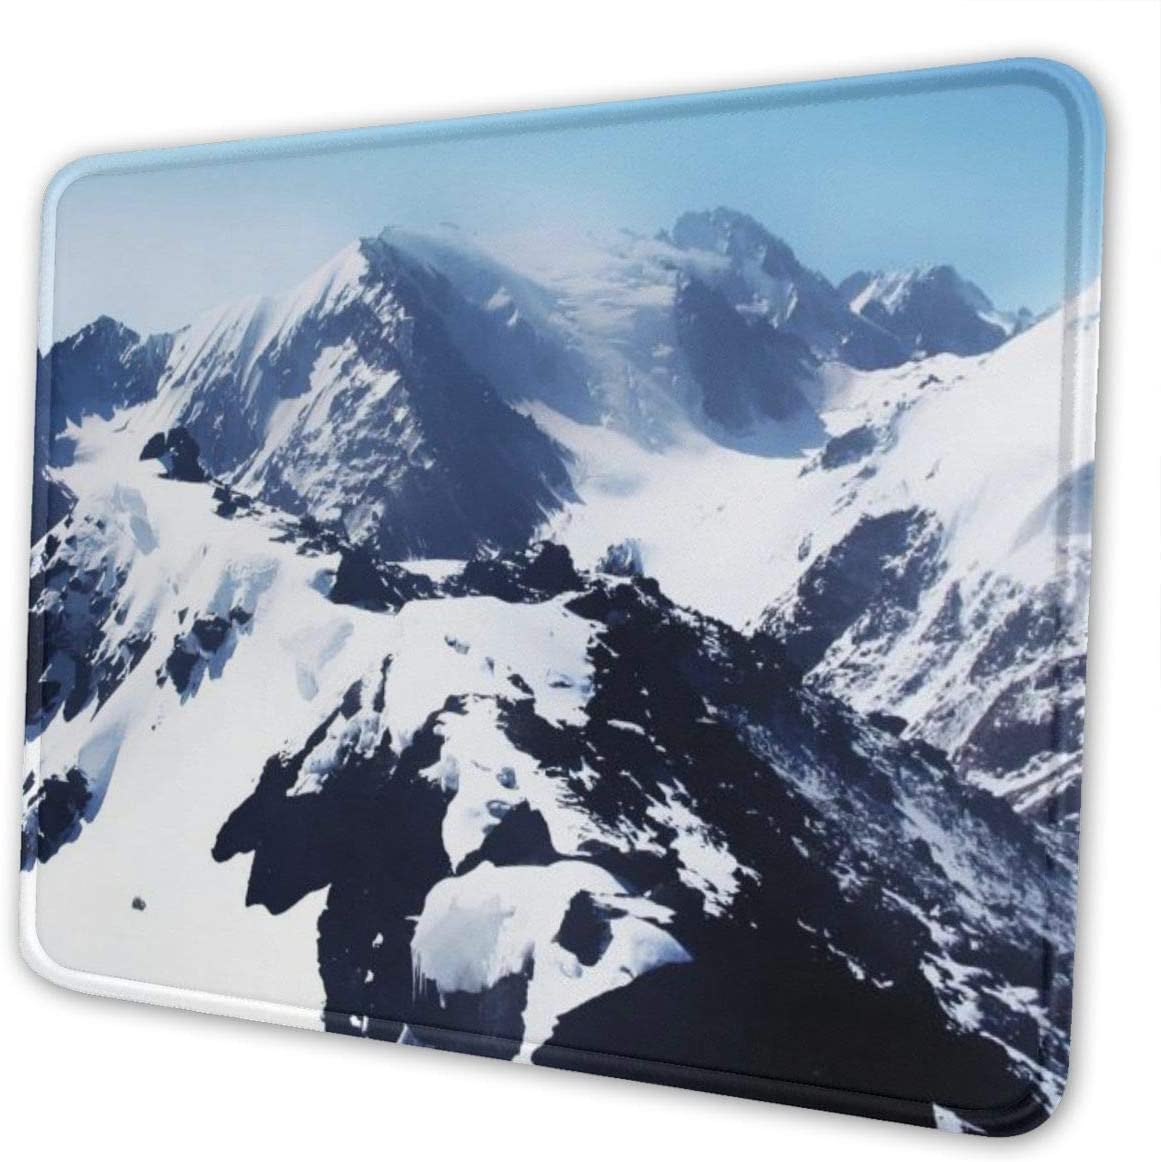 4 Size Available - Rectangle Rubber Mouse Mat for Computer//Laptop Washable Mouse Pad 3mm Thick 10 X 12 Inch X 0.12 Space Planet Non-Slip Gaming Mousepad